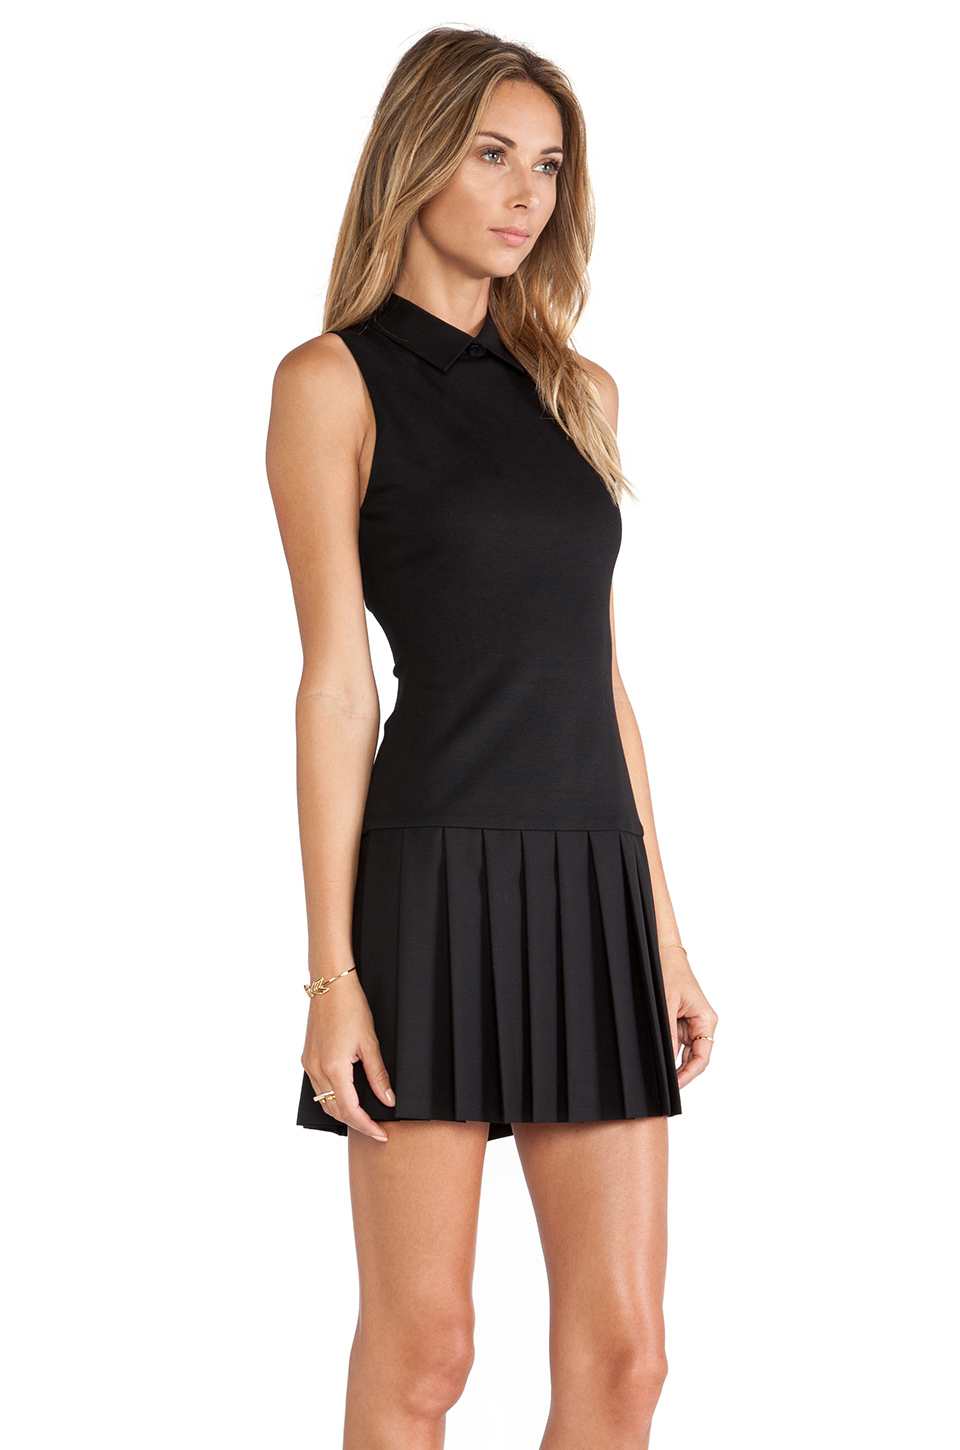 Black dropped waist dresses